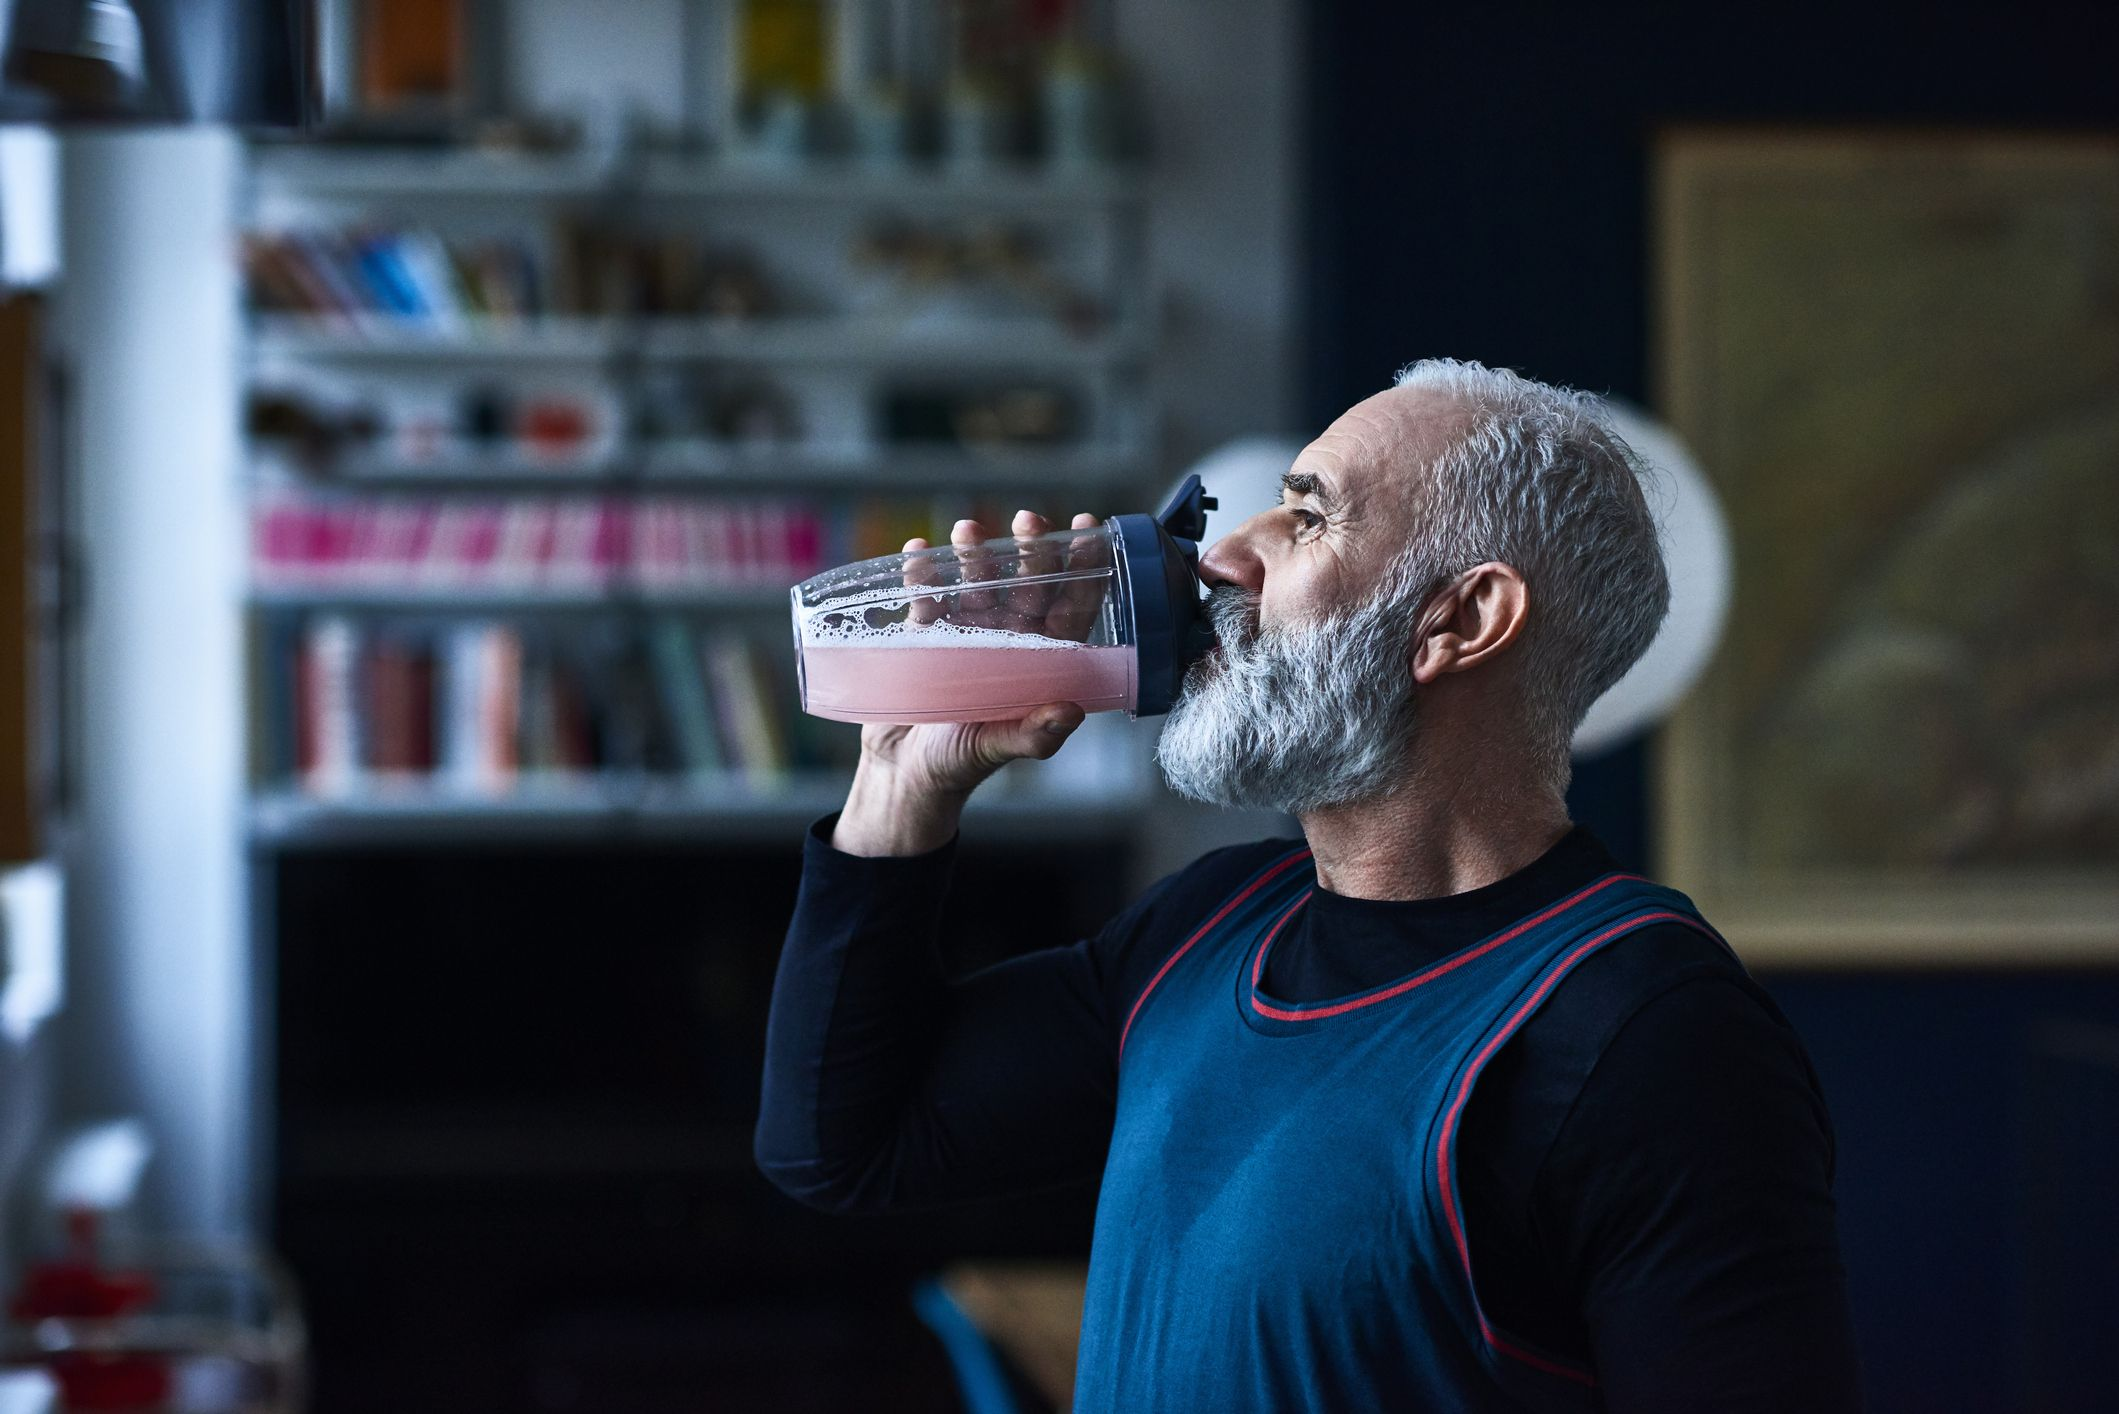 drinking shakes instead of eating may be why you're always hungry.